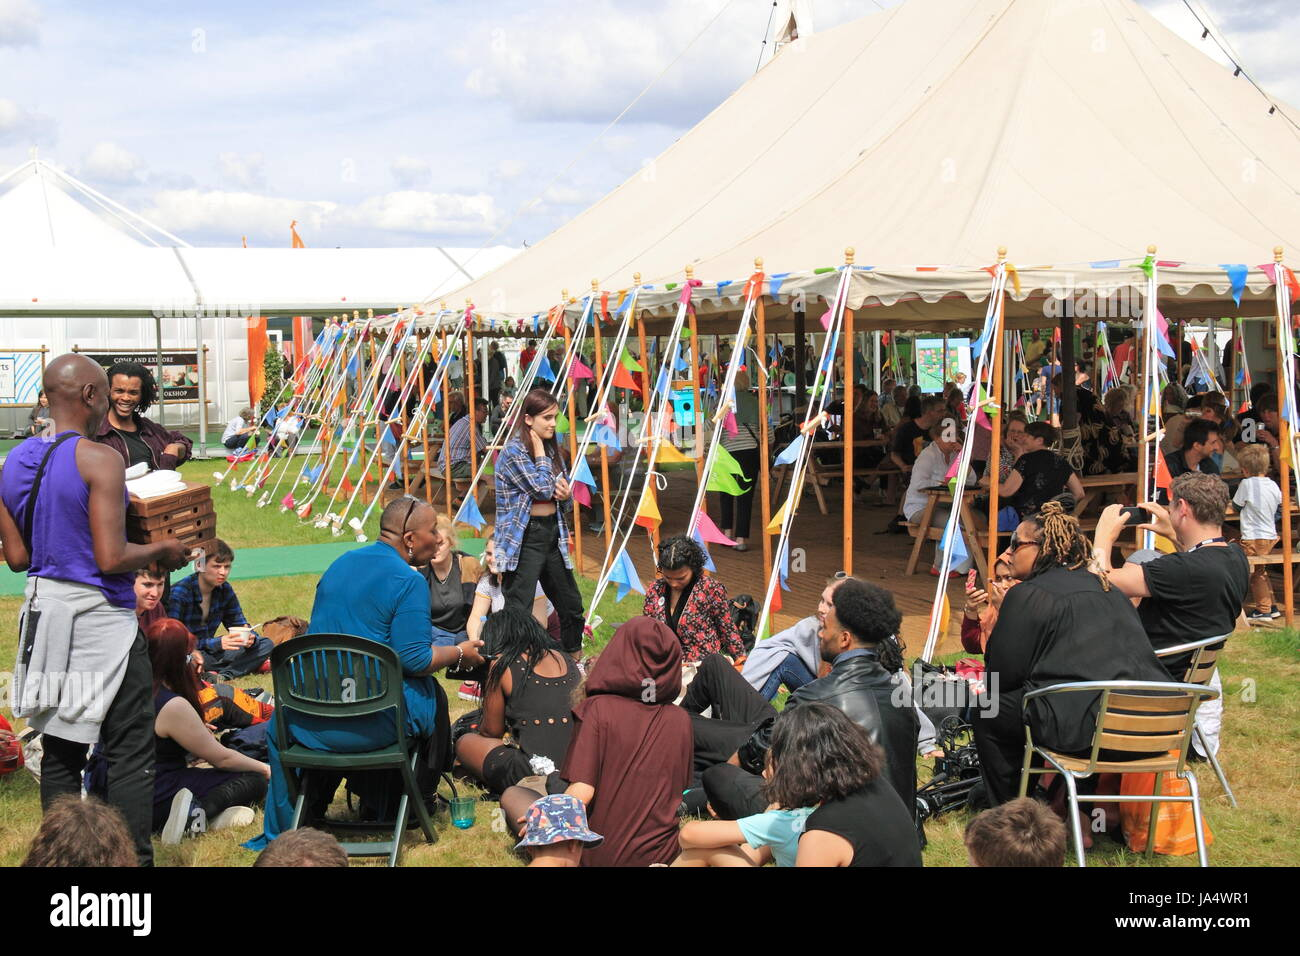 Festival-goers relaxing in the sun, Hay Festival 2017, Hay-on-Wye, Brecknockshire, Powys, Wales, Great Britain, - Stock Image